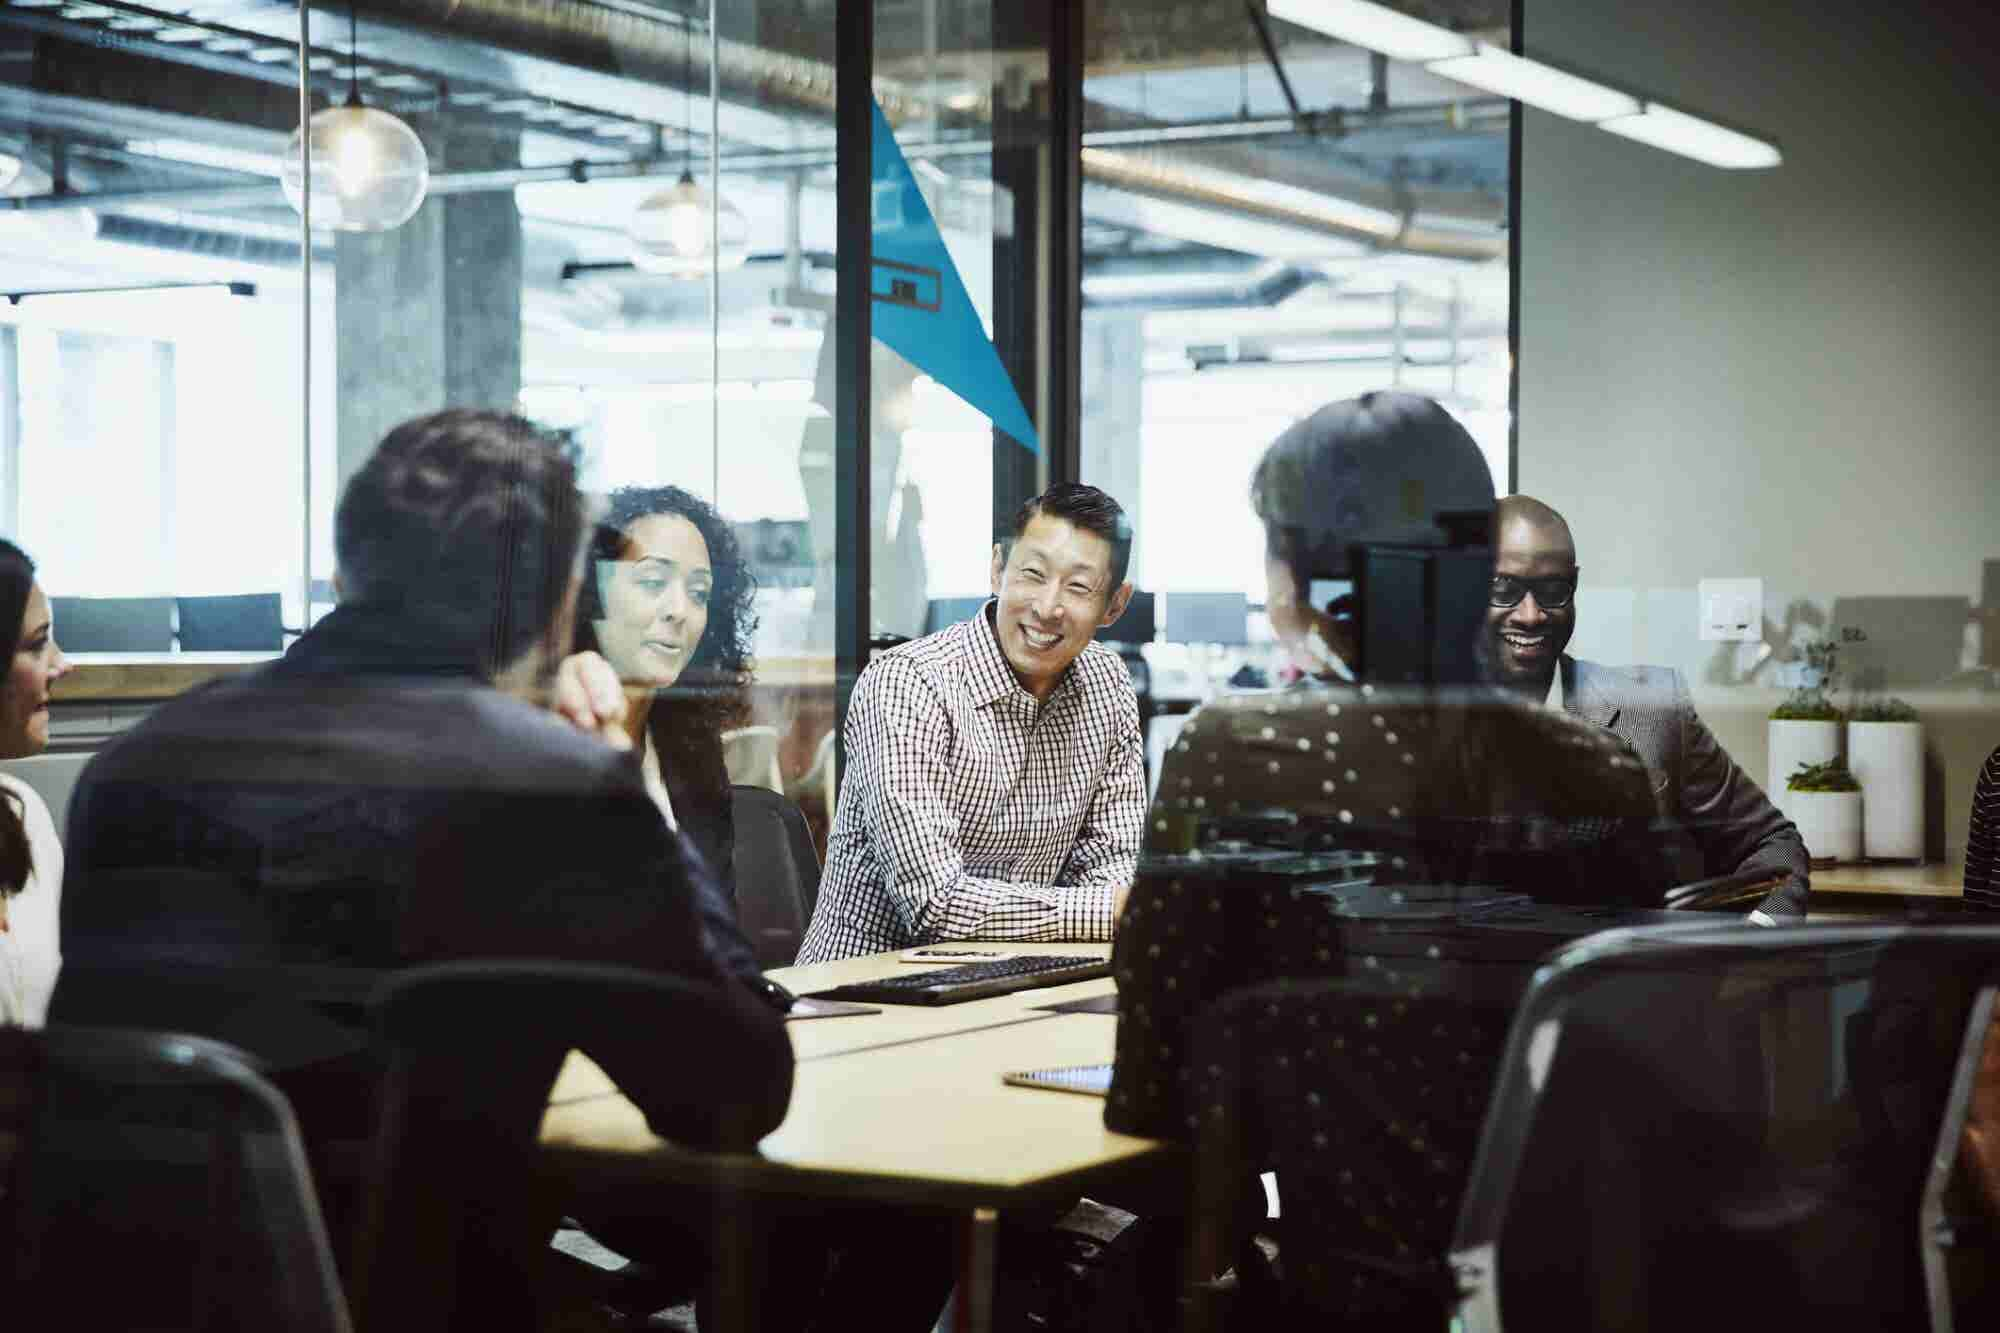 Correcting and Dispelling the Myths About Diversity and Inclusion Hiring -- 4 Experts Weigh in